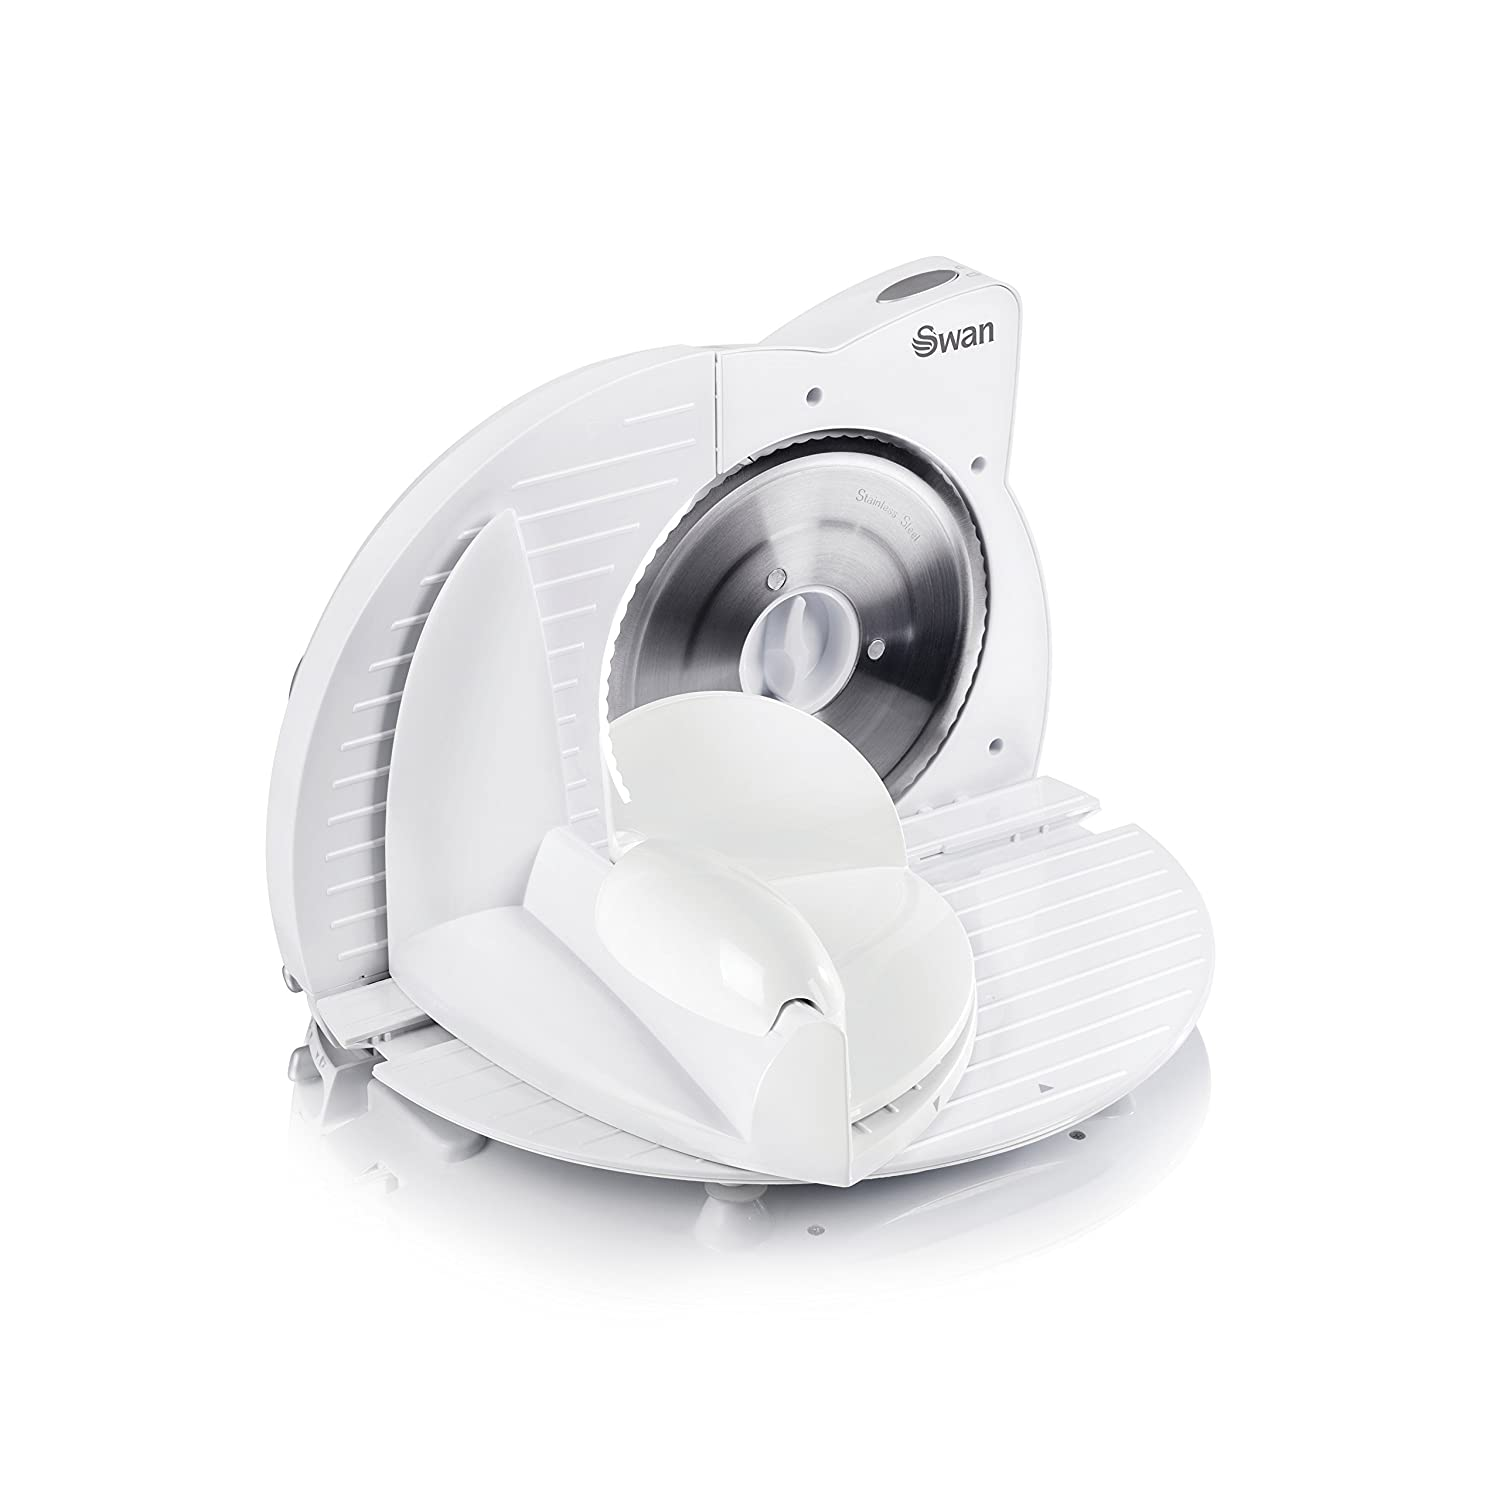 Swan SP10060N Compact White Food Slicer - 150 W, White